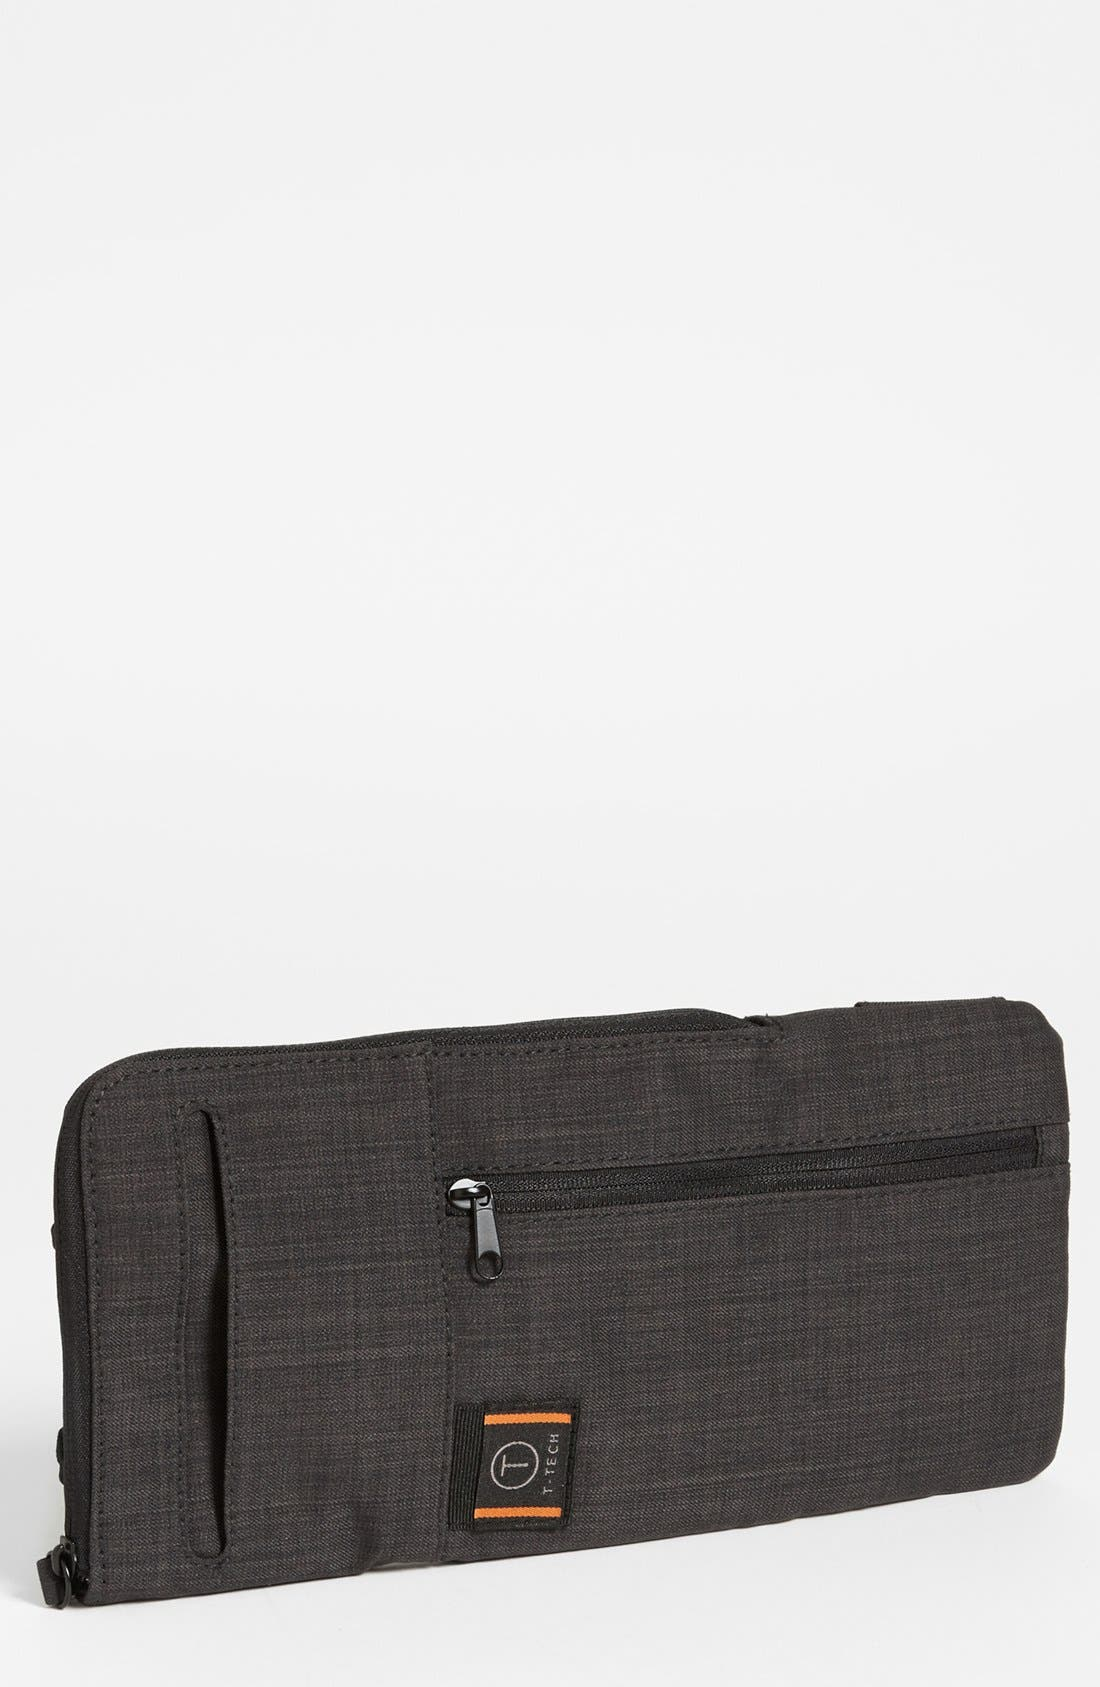 Alternate Image 1 Selected - T-Tech by TUMI Convertible Undercover Stash Bag